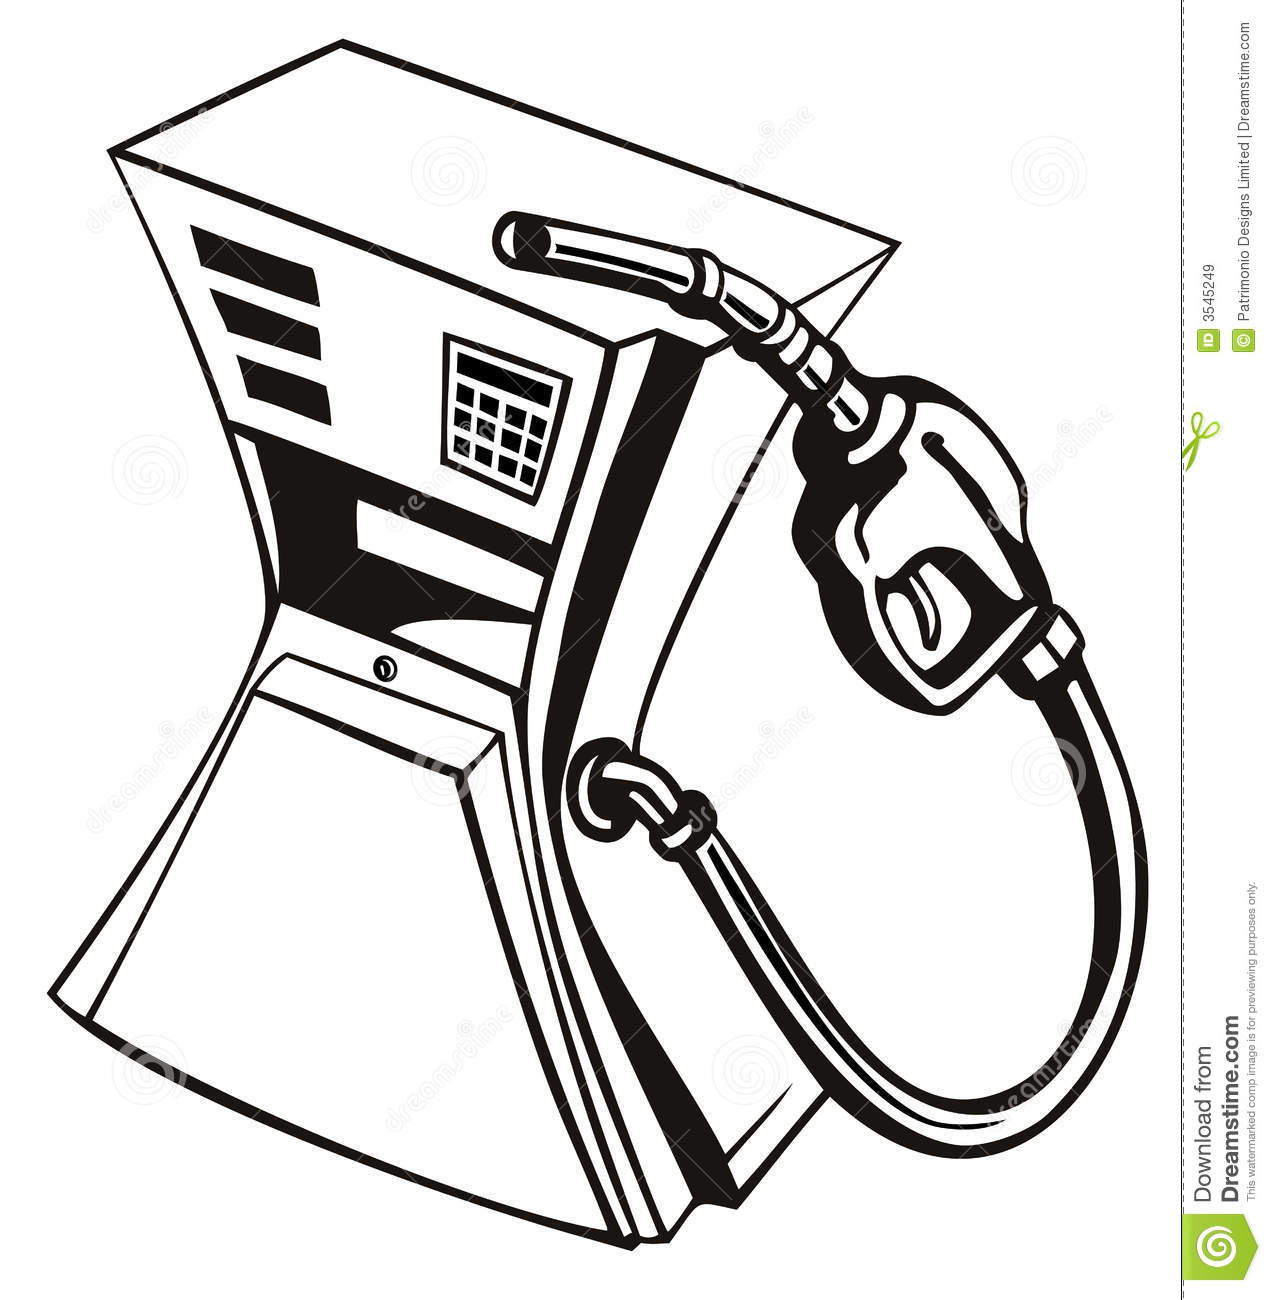 Gas clipart black and white 9 » Clipart Station.